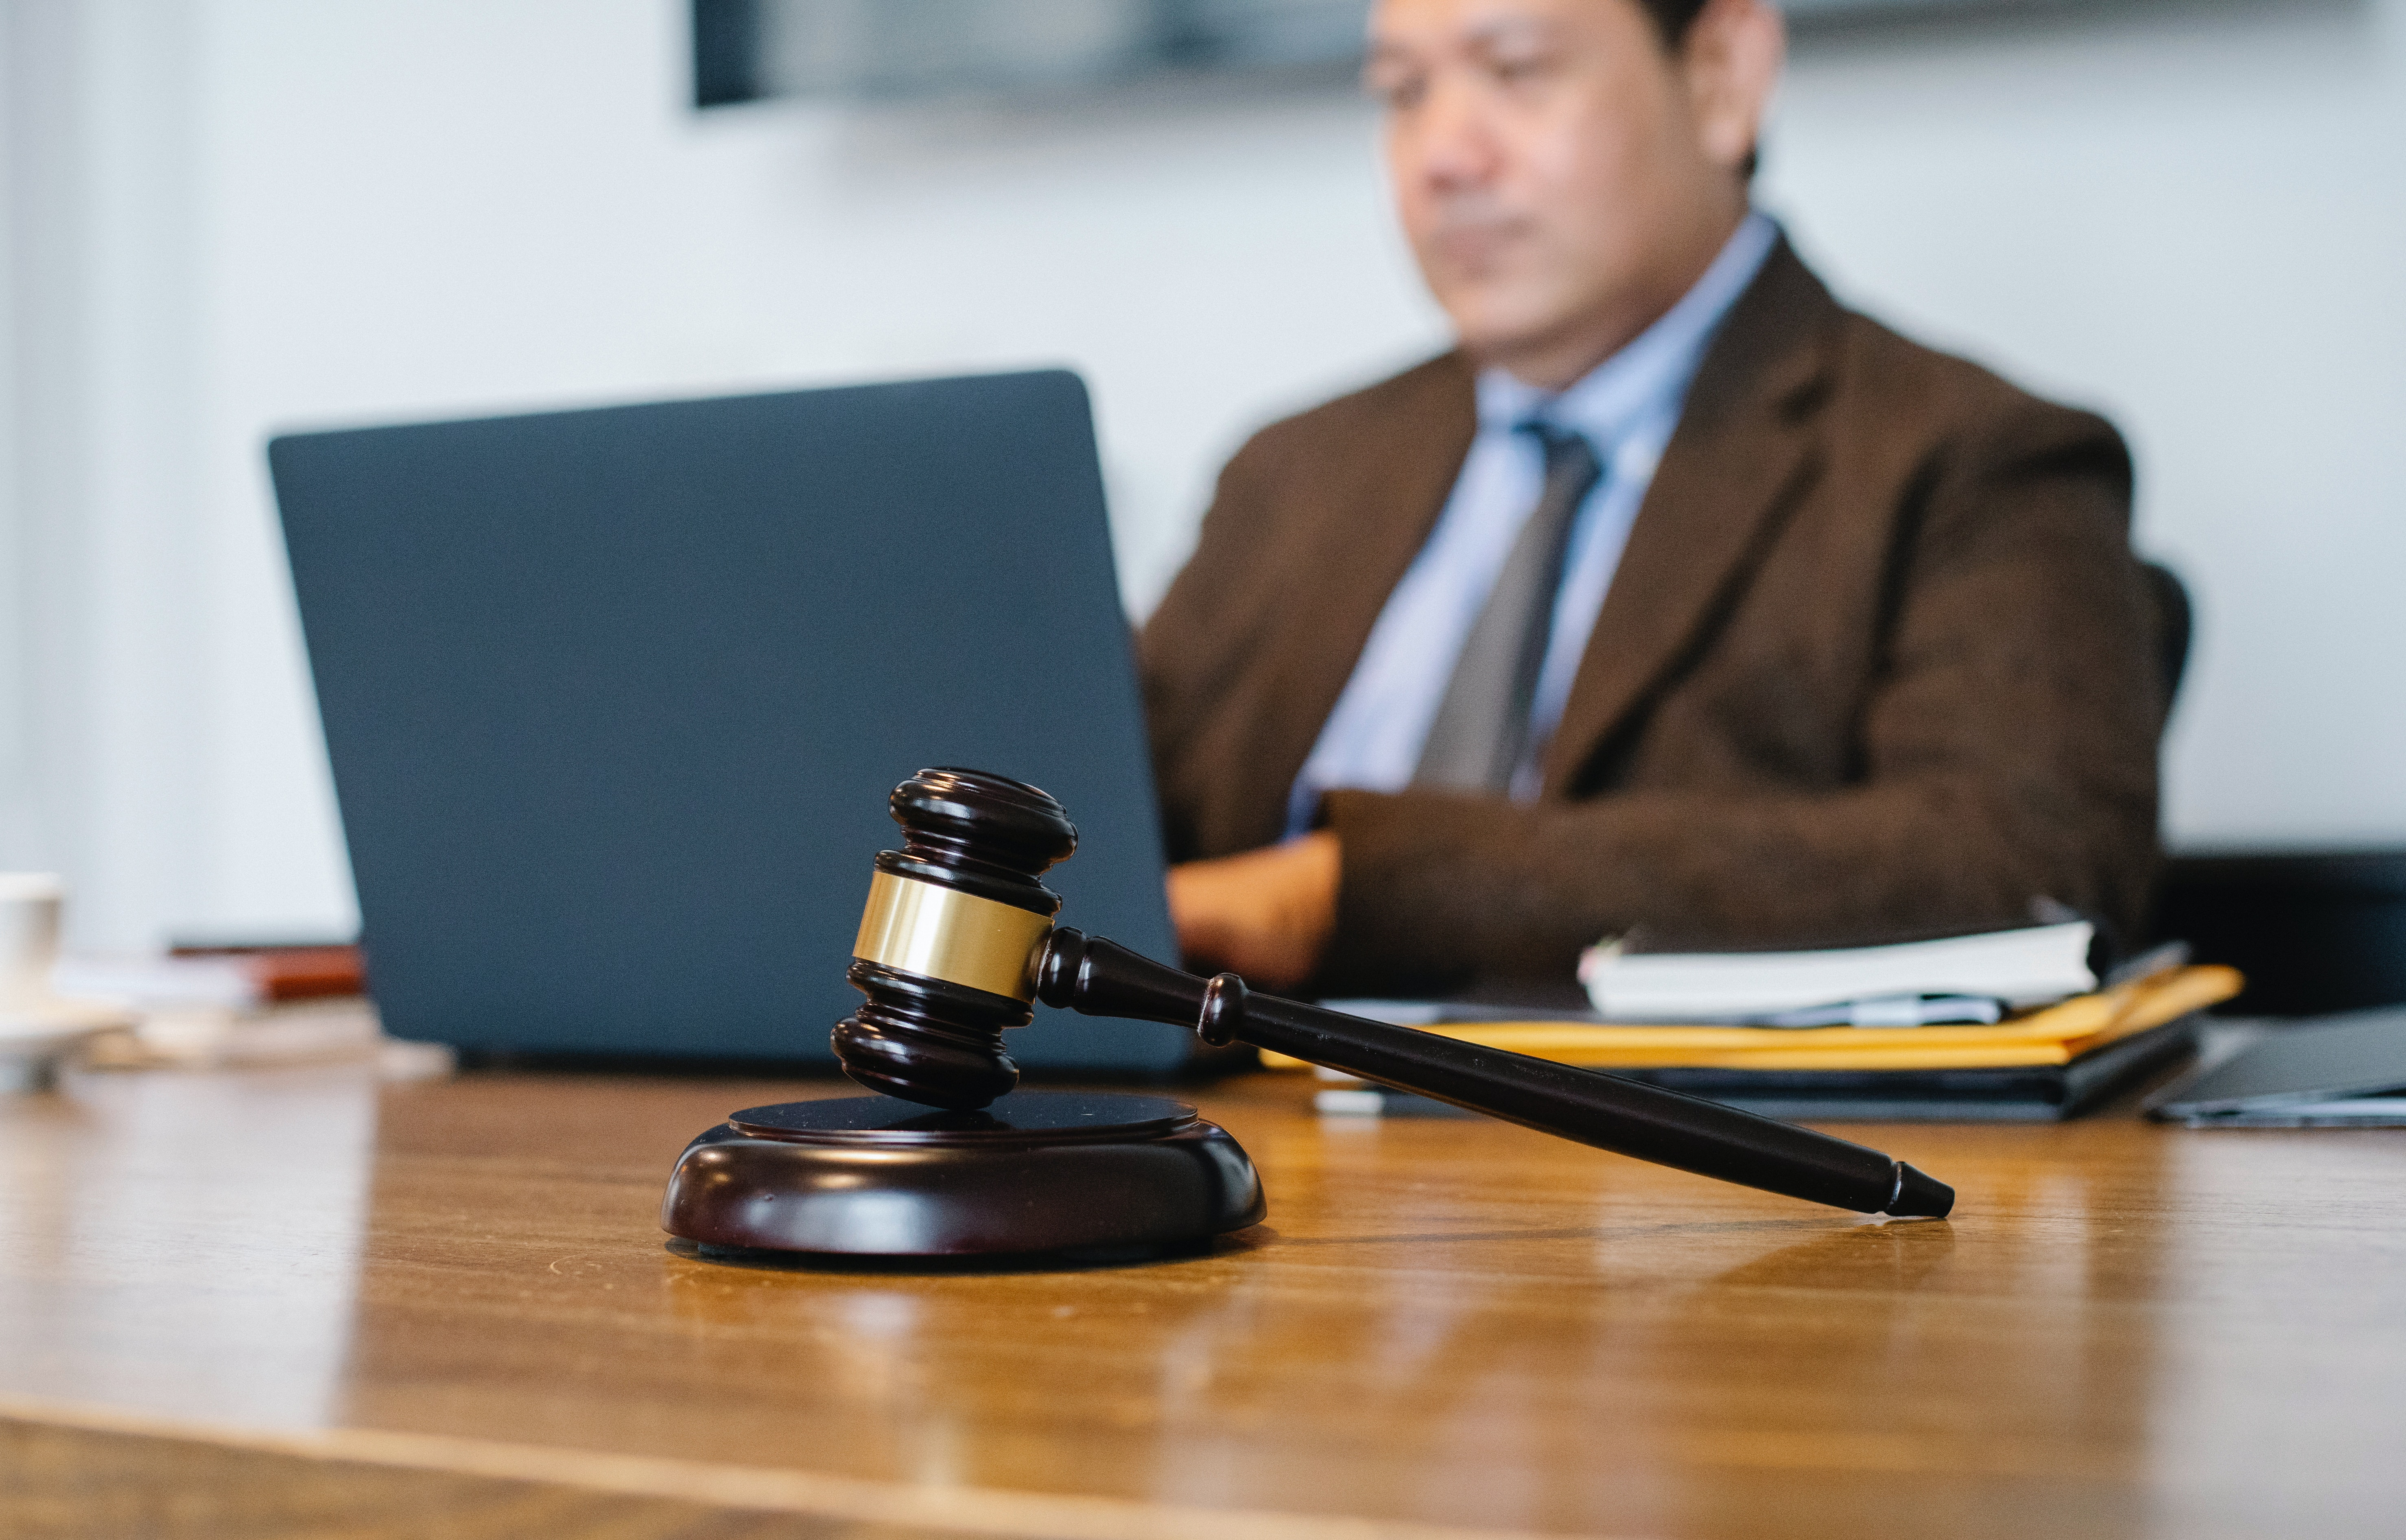 Legal Professional Using A Computer